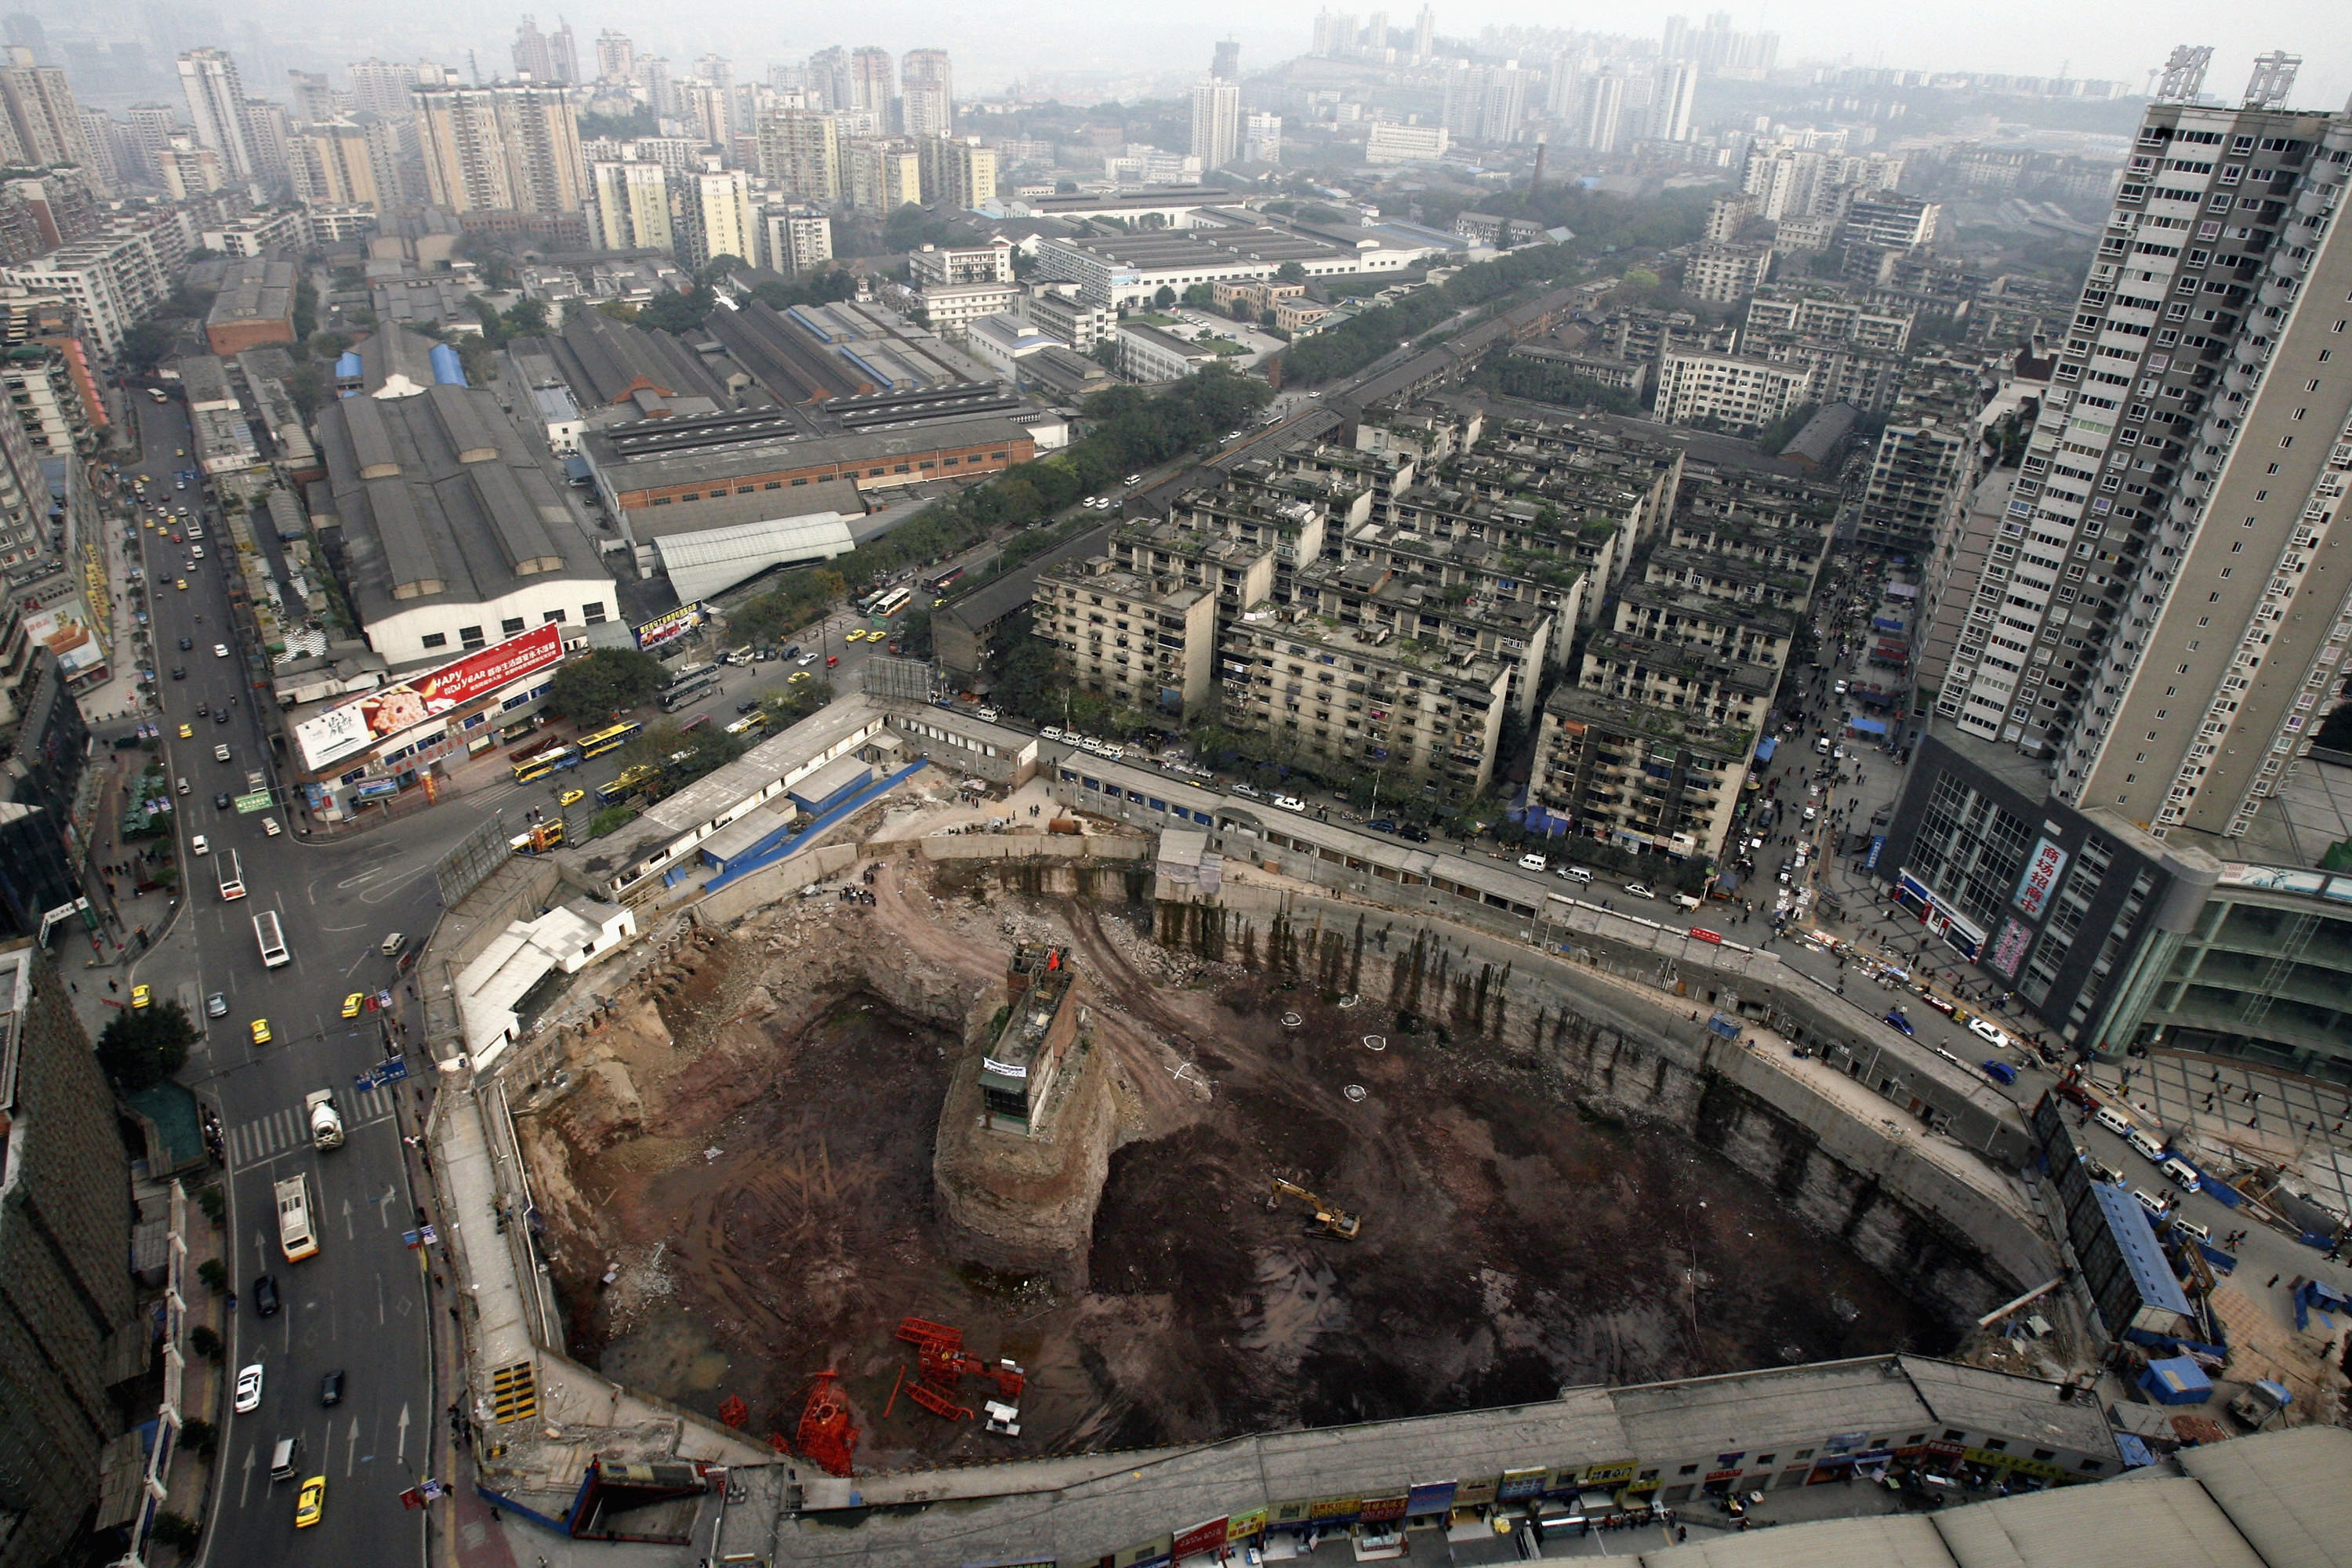 CHONGQING, CHINA - MARCH 22: (CHINA OUT) A building sits on its own island of land amid construction all around it, on March 22, 2007 in Chongqing Municipality, China. The homeowner, who has hung a banner and the national flag in protest, has refused to sell to a developer who went ahead with construction around the site. The Jiulongpo District Court has ordered the household to move out before March 22. The National People's Congress, China's legislature, just approved a much-debated new property law that for the first itme provides legal protections for private assets in China. (Photo by China Photos/Getty Images)